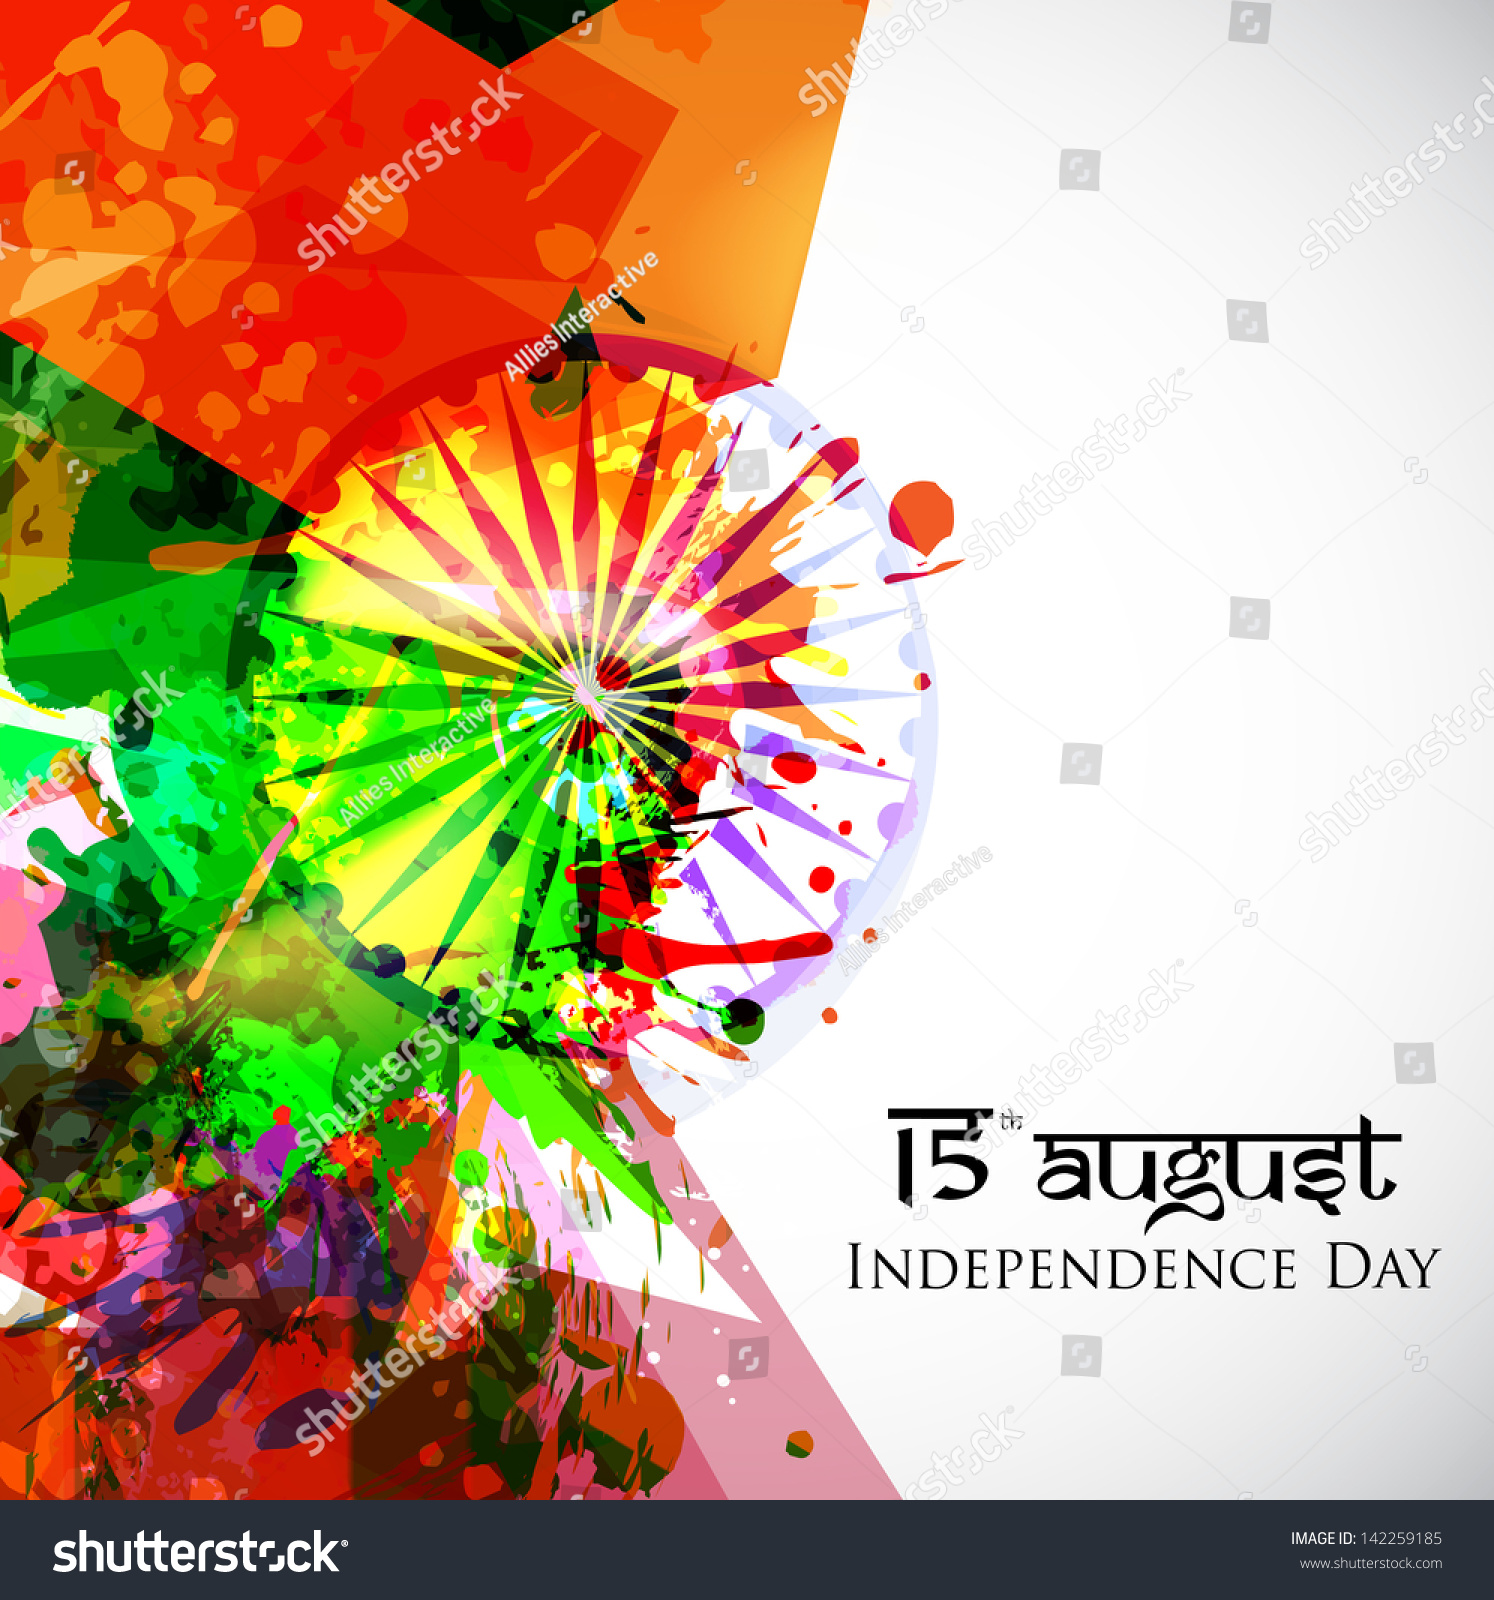 Colors website ashoka - Indian Independence Day National Flag Colors Background With Ashoka Wheel